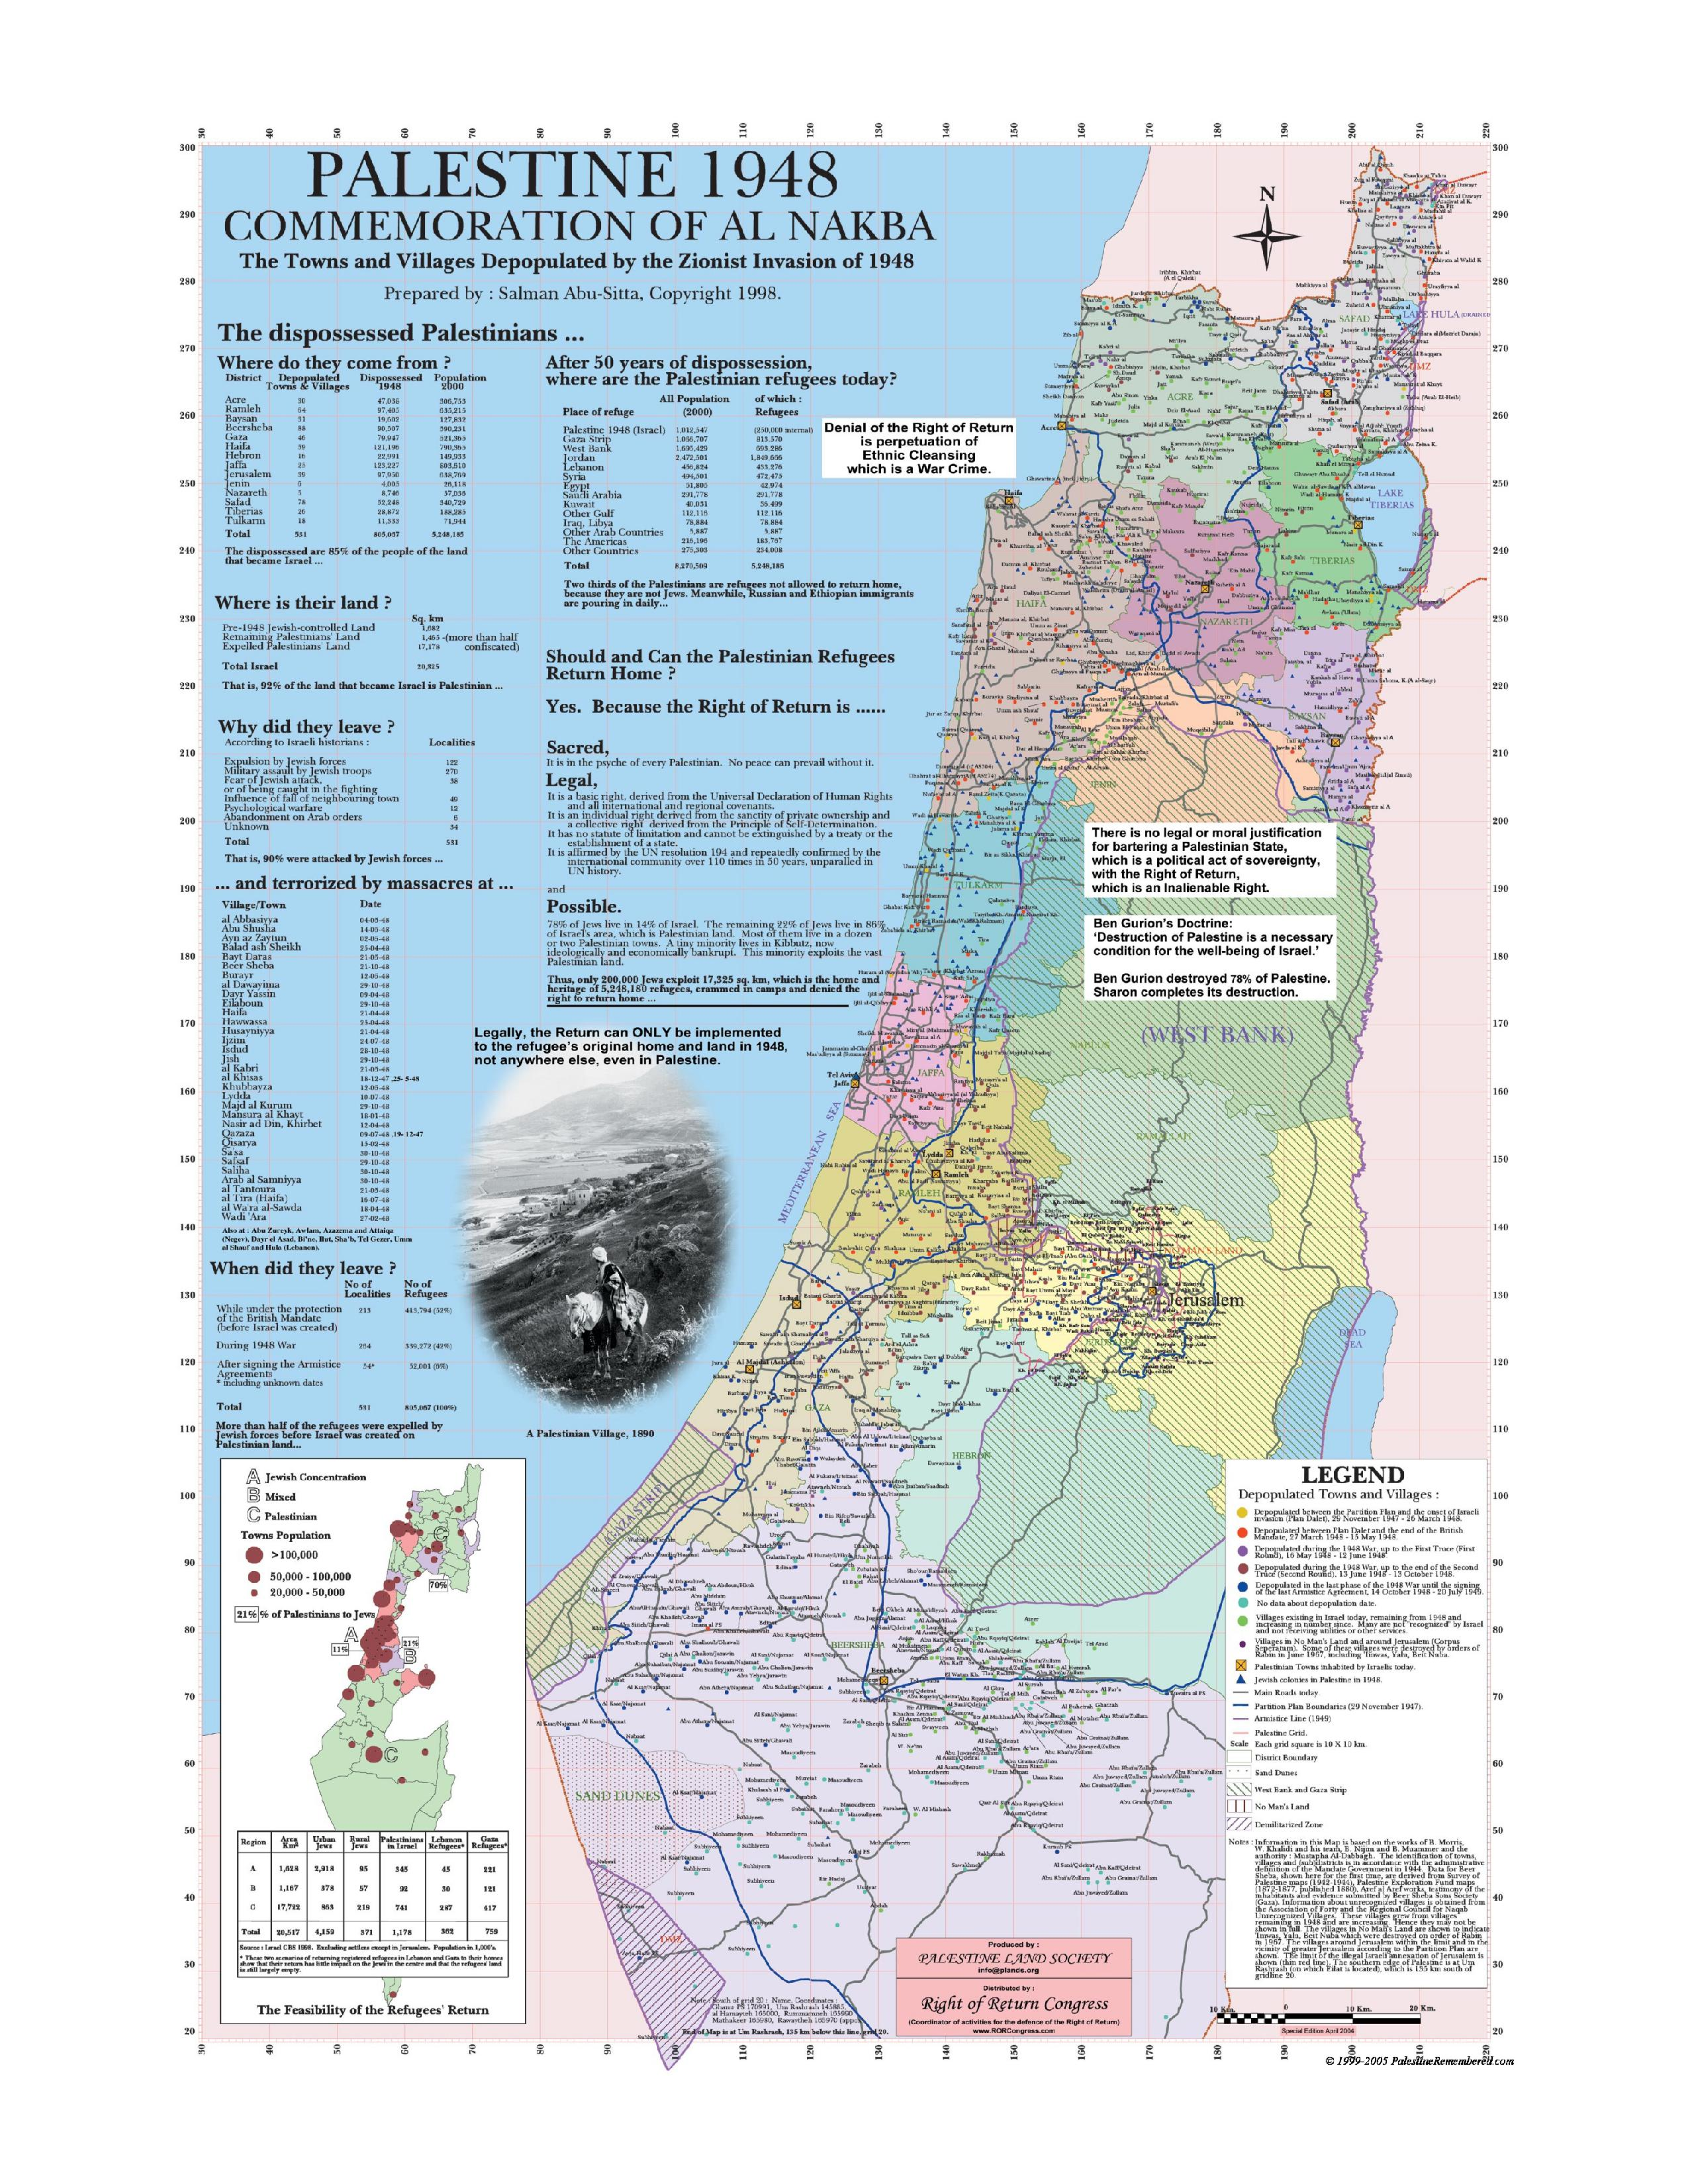 Palestine 1948_The Towns and Villages Depopulated by the Zionist Invasion of 1948 (zochrot.org)